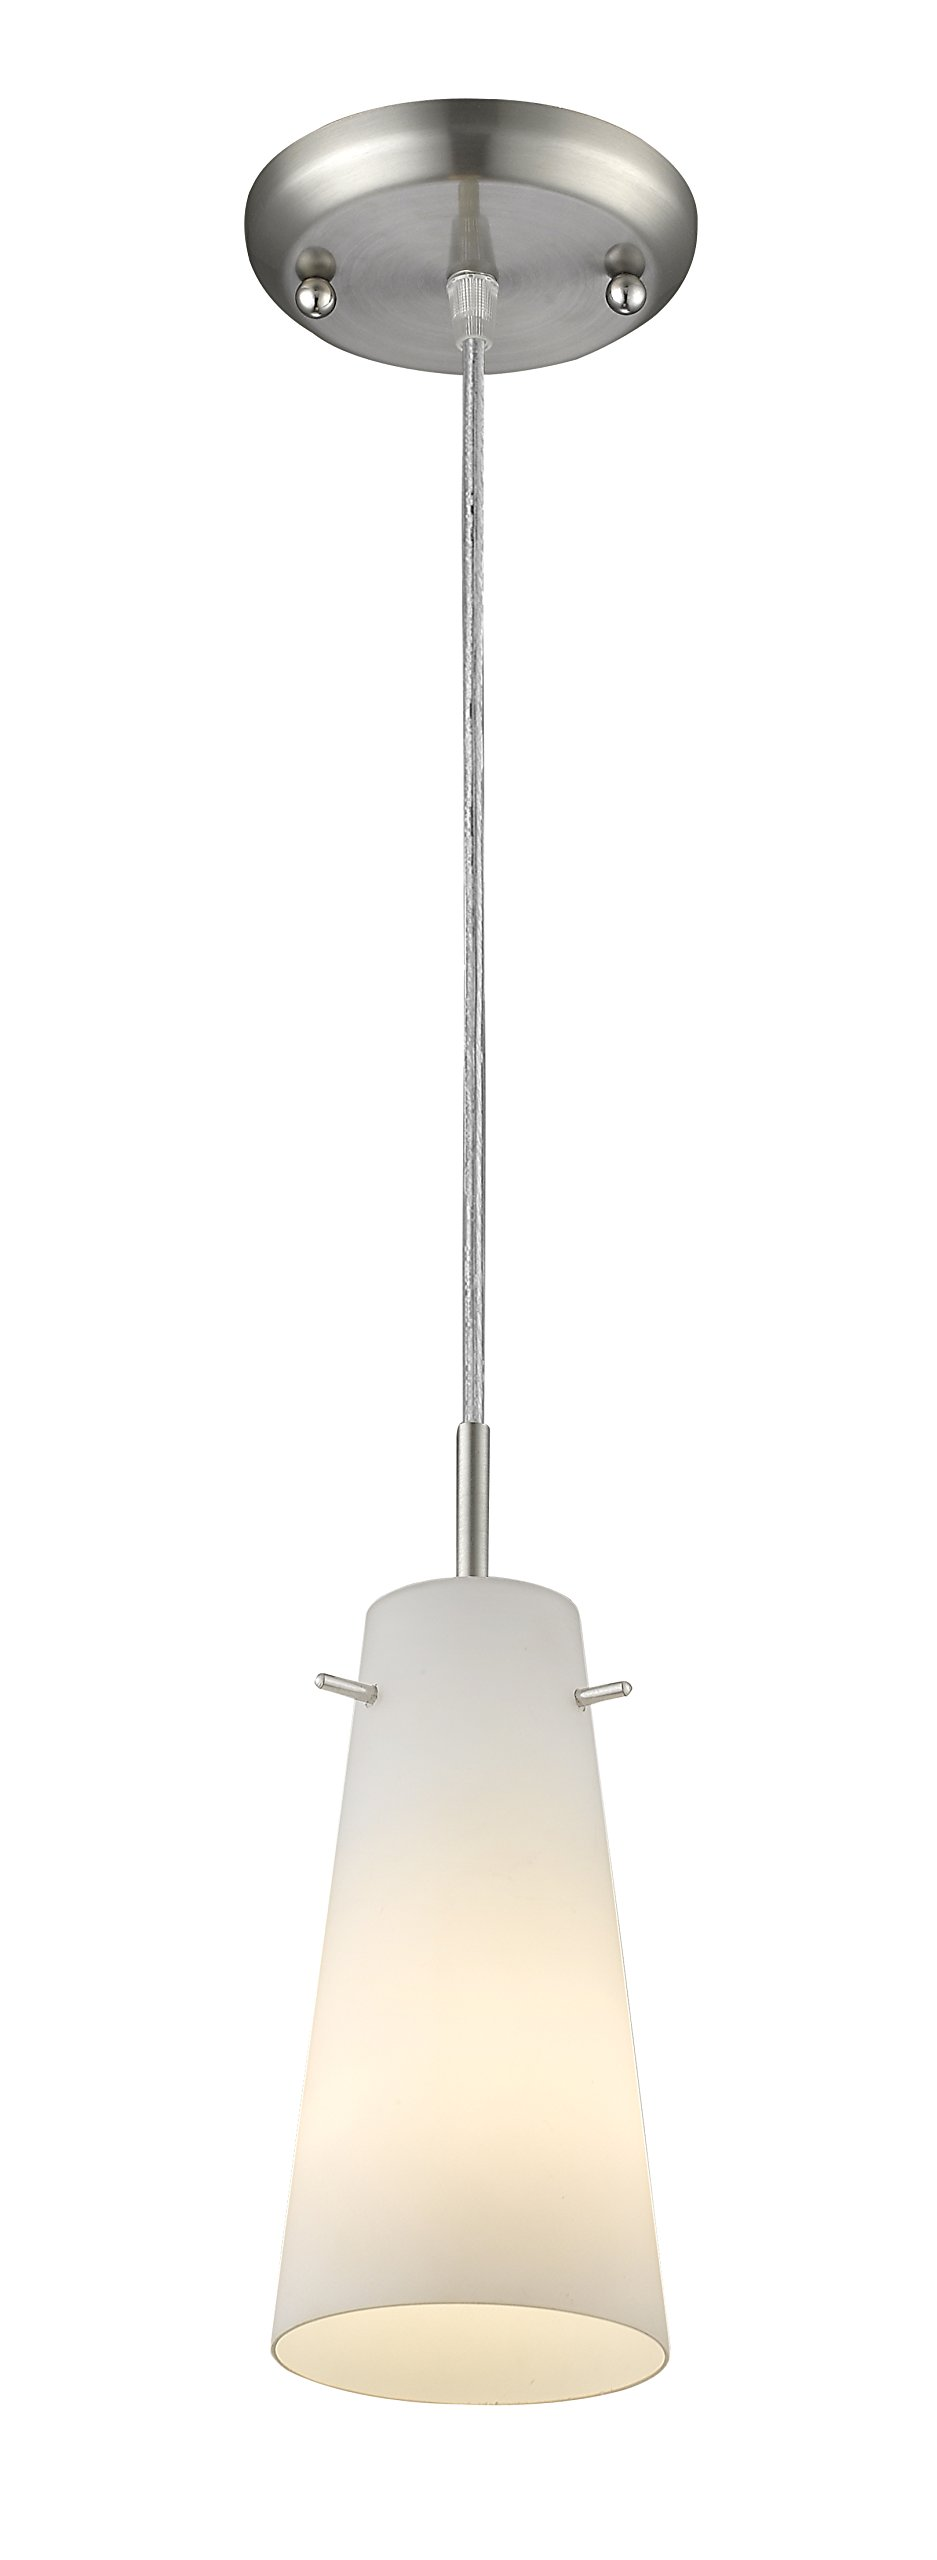 Z-Lite 133MP-BN 1 Light Mini Pendant 1 by Z-Lite (Image #1)